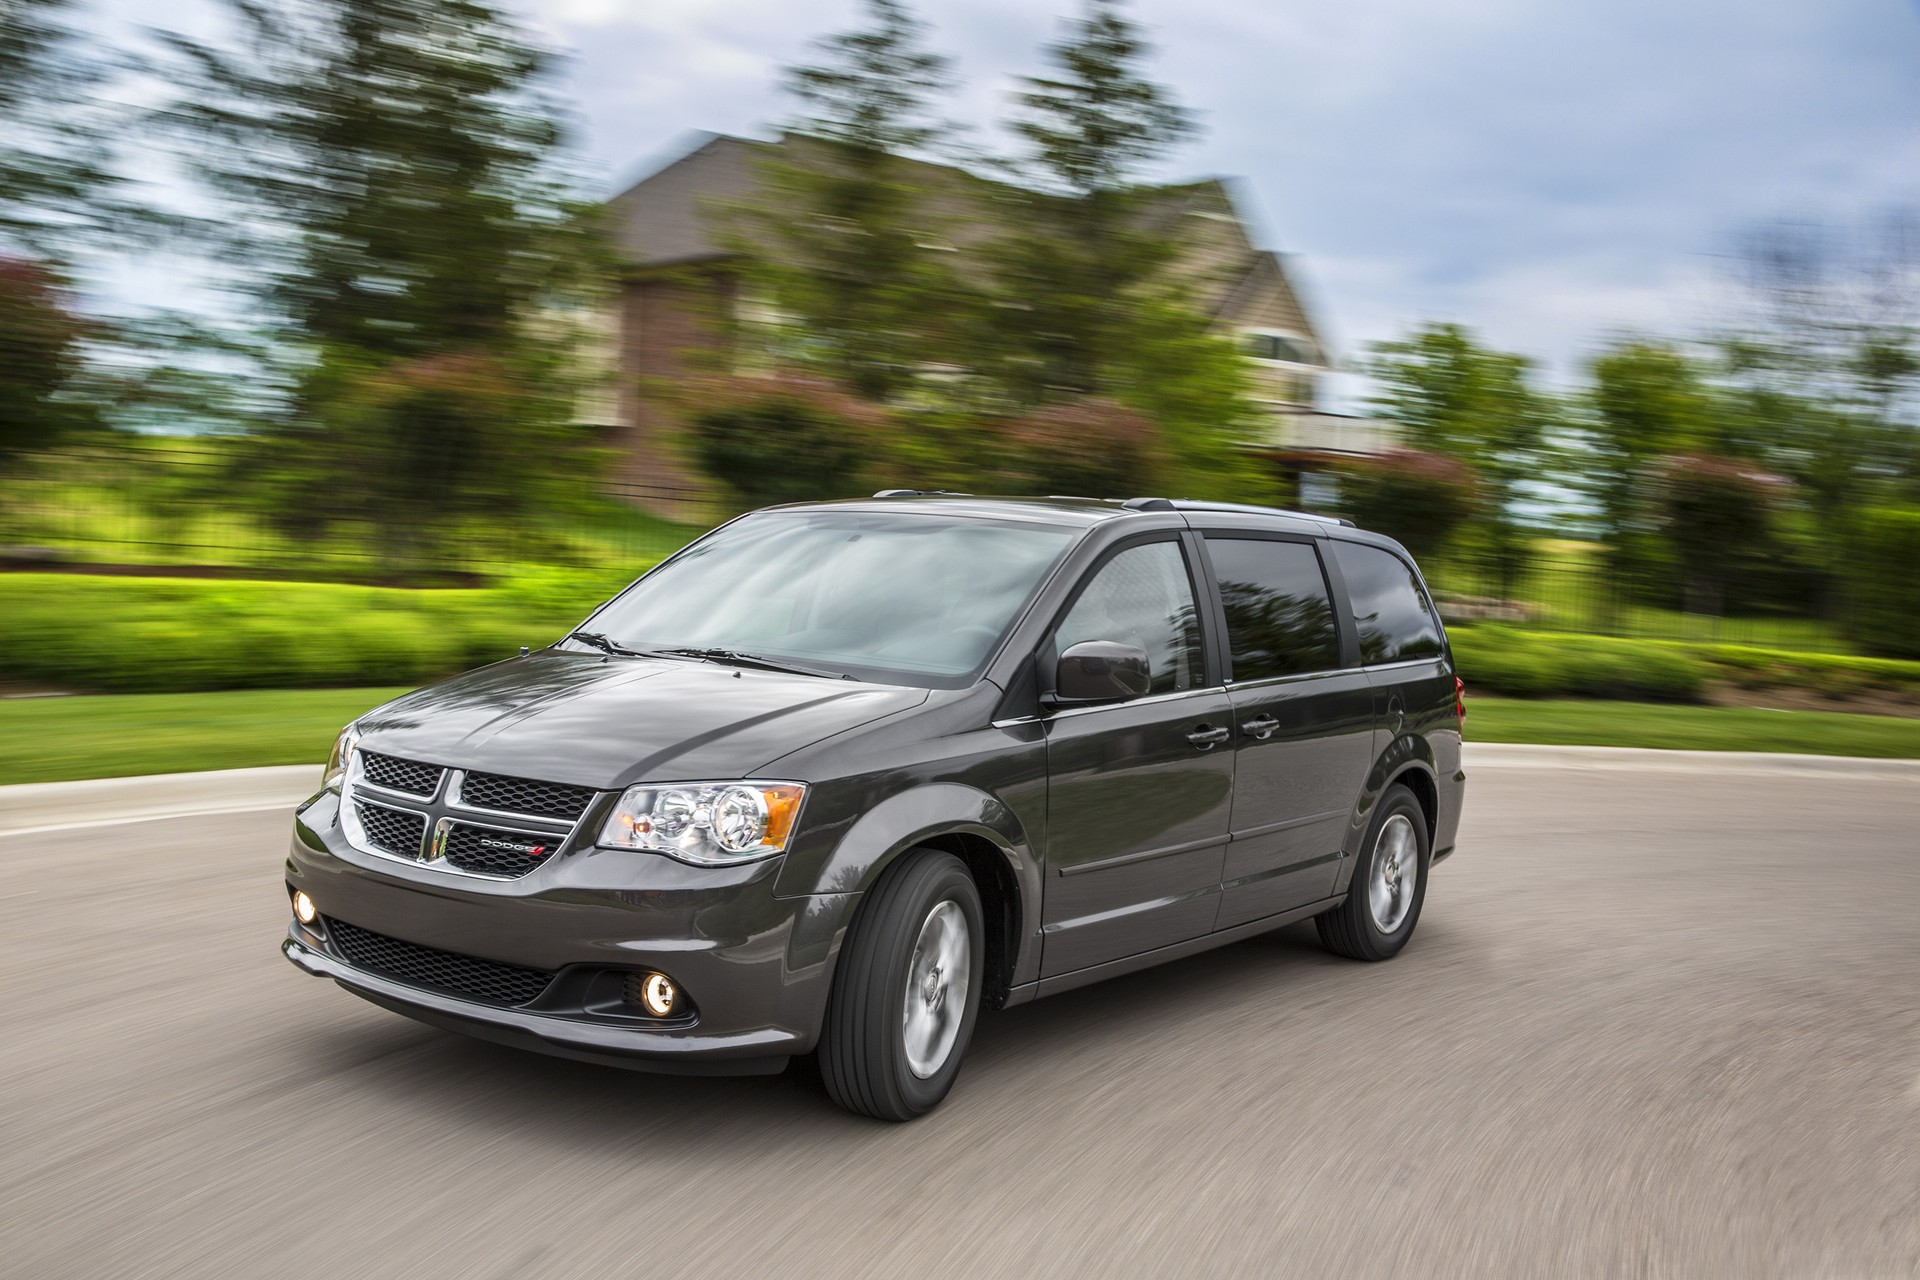 new and used dodge grand caravan prices photos reviews. Black Bedroom Furniture Sets. Home Design Ideas